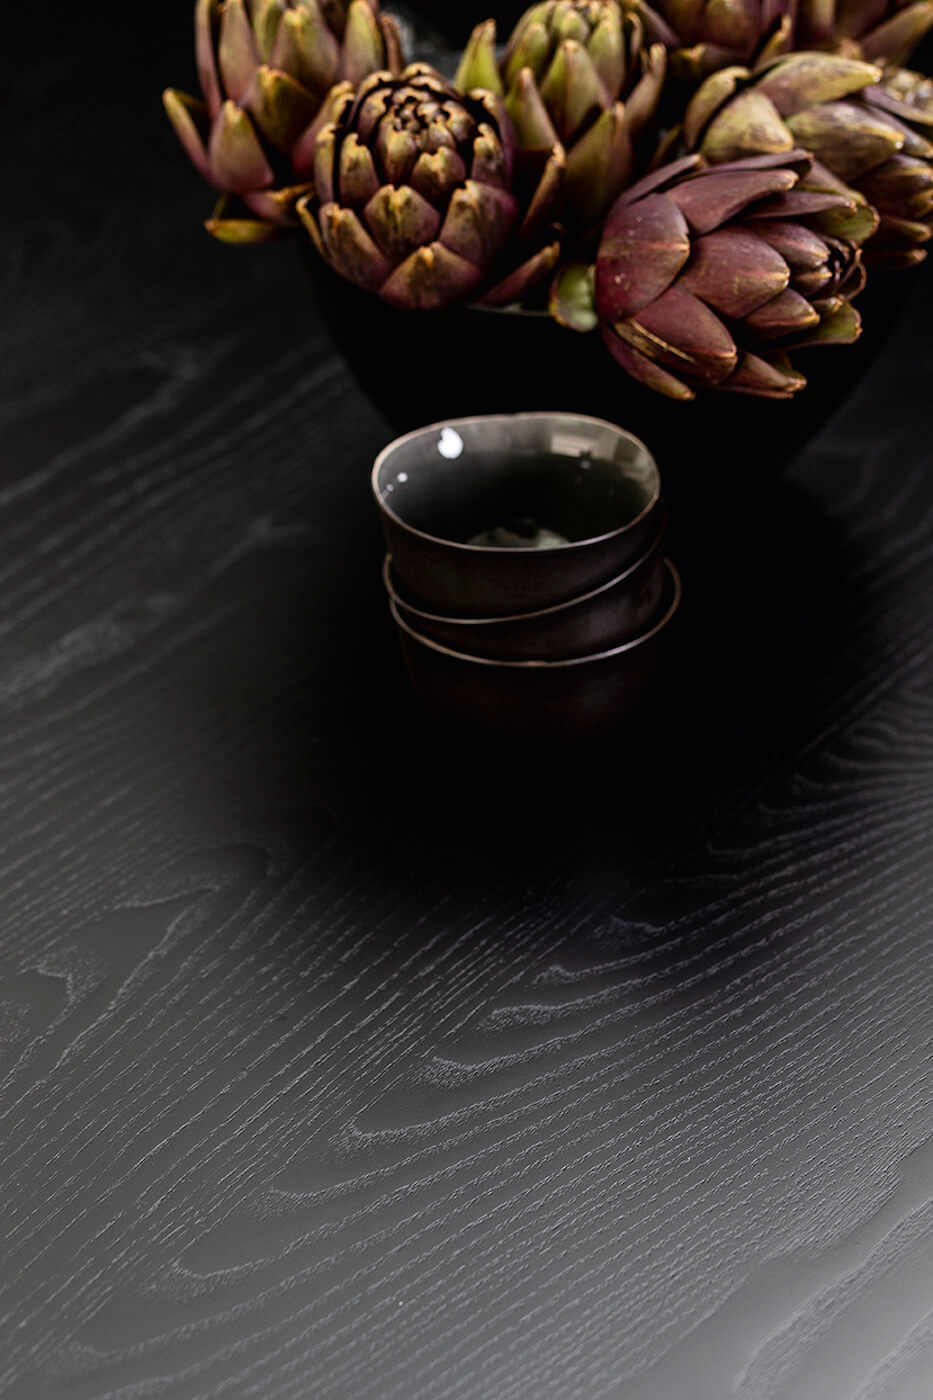 Detail of the black wooden top of the Pechino table